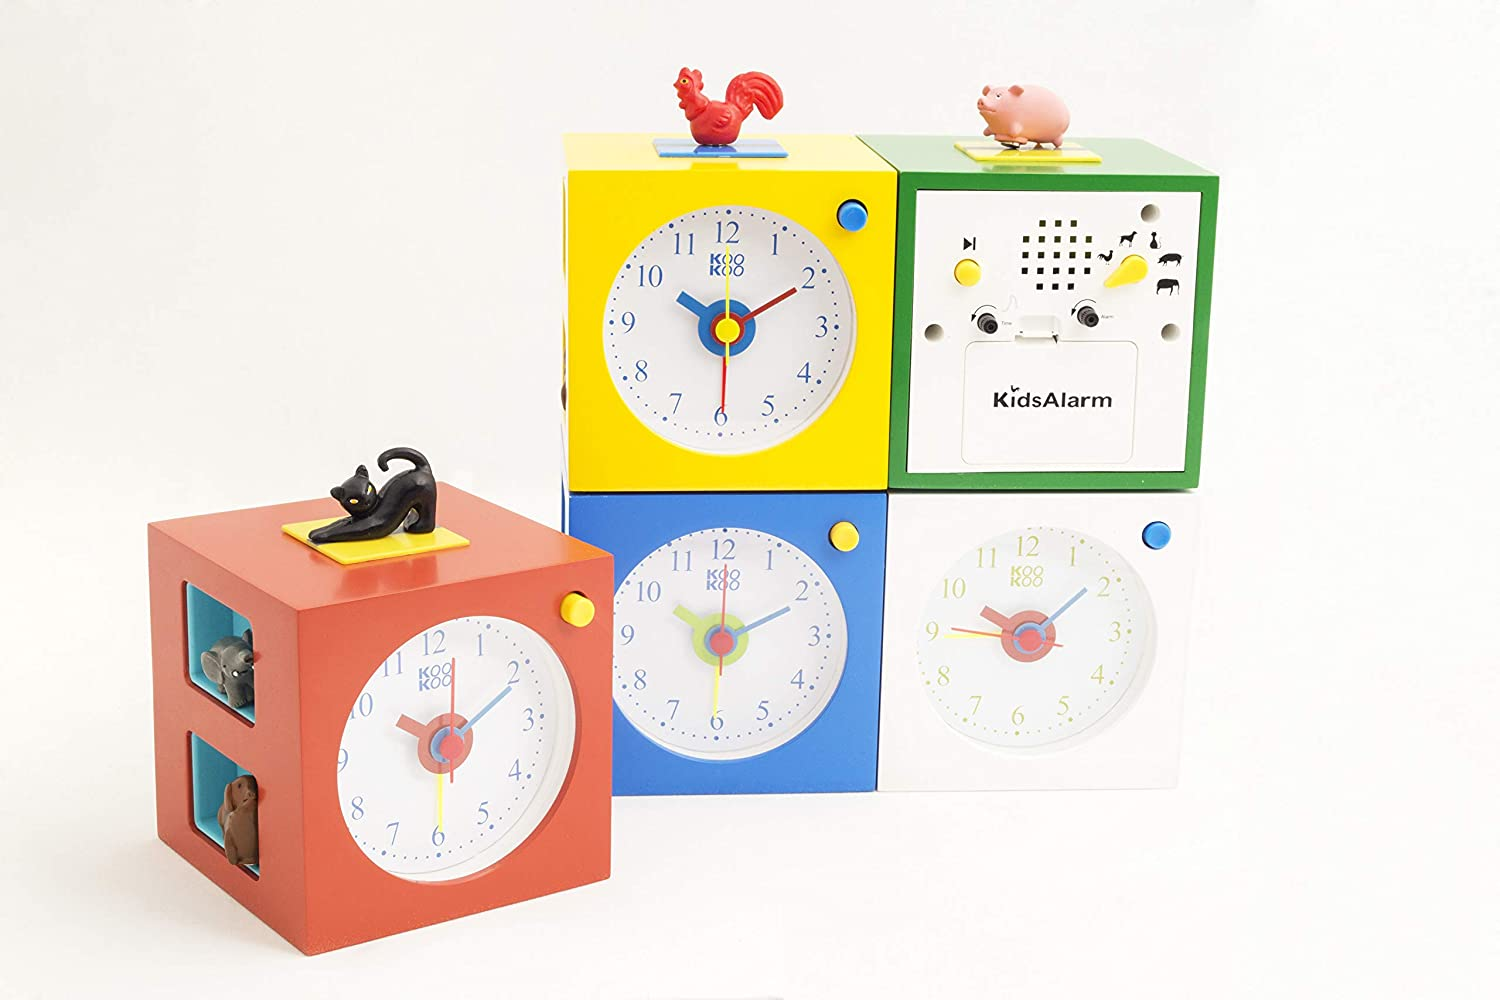 natural field recordings MDF wood cabinet; KOOKOO KidsAlarm green alarm clock for children including 5 farm animals and their wake-up calls